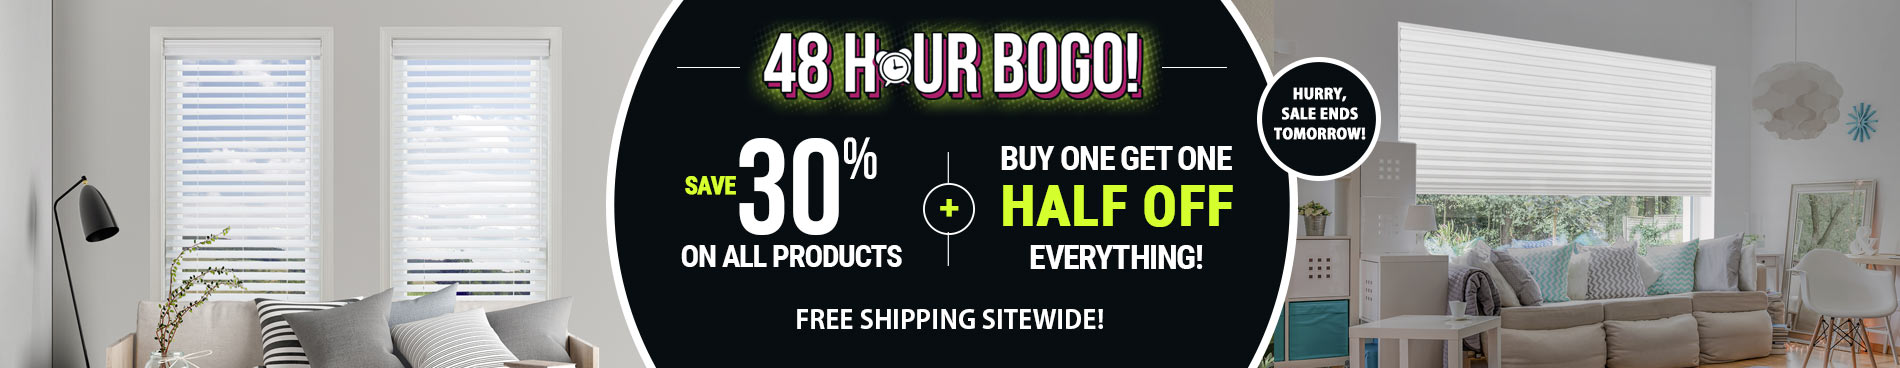 Save 30% + BOGO Half Off